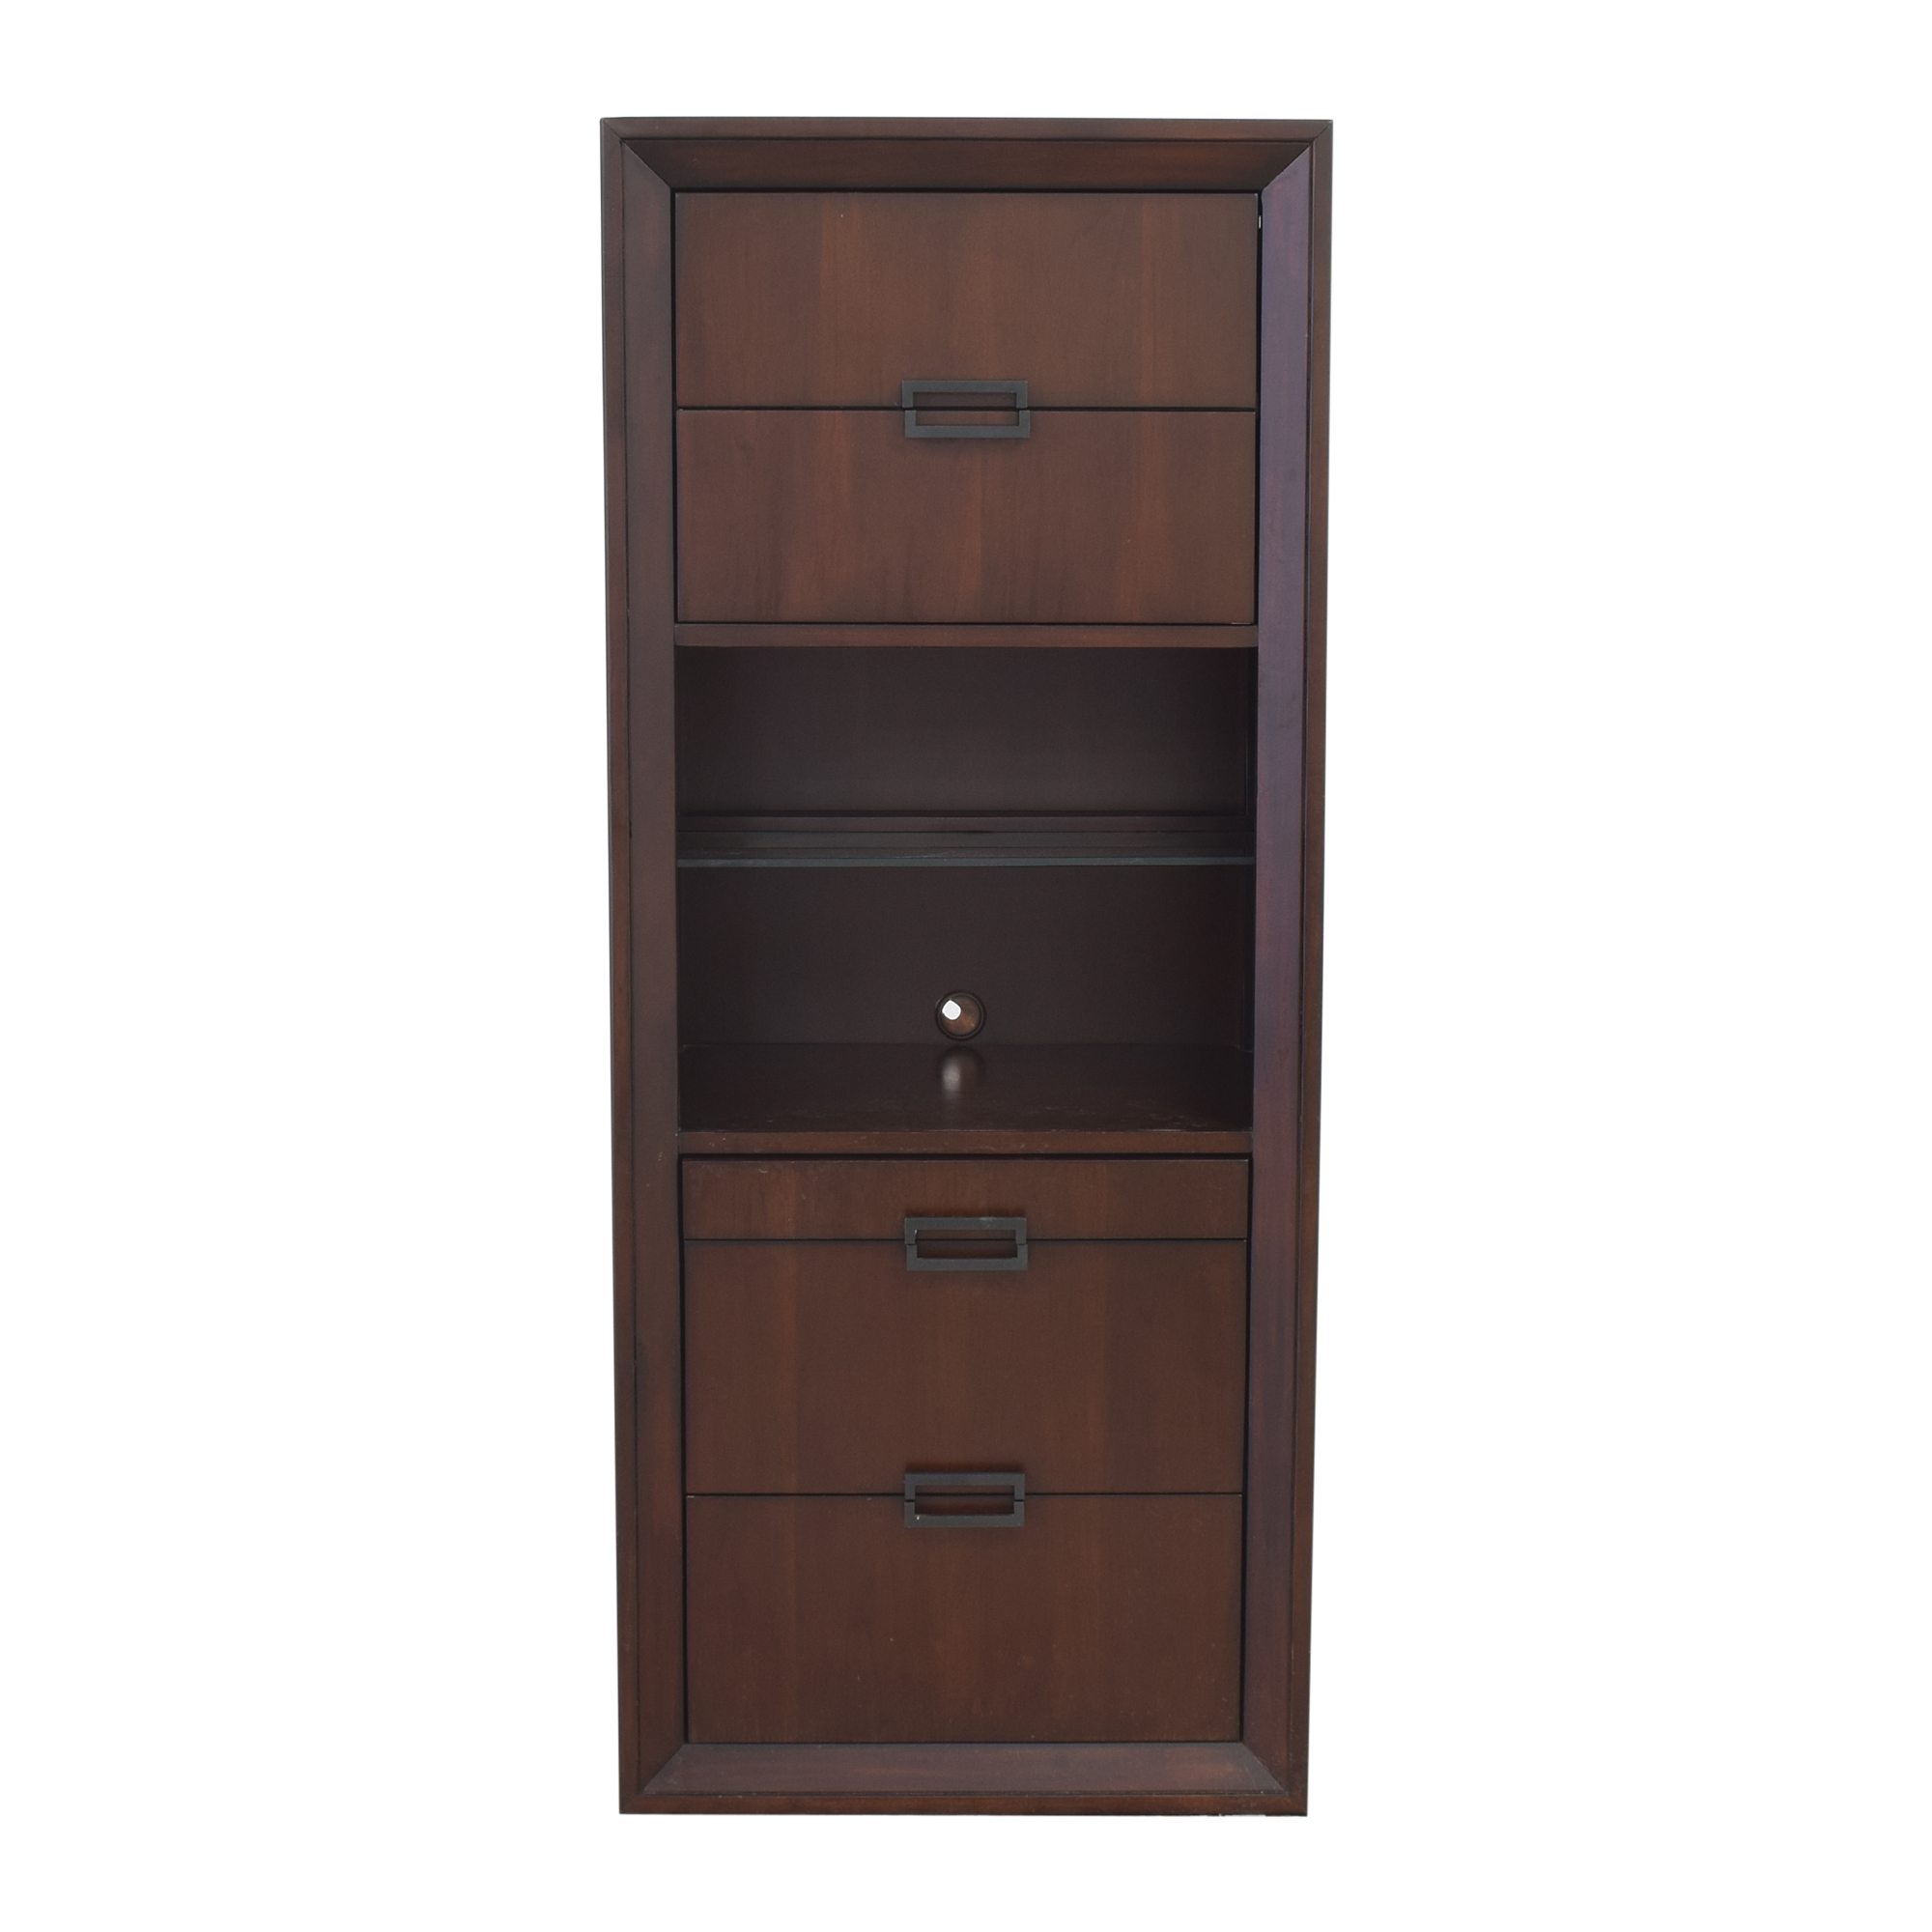 Raymour & Flanigan Raymour & Flanigan Vista Bedside Cabinet ct